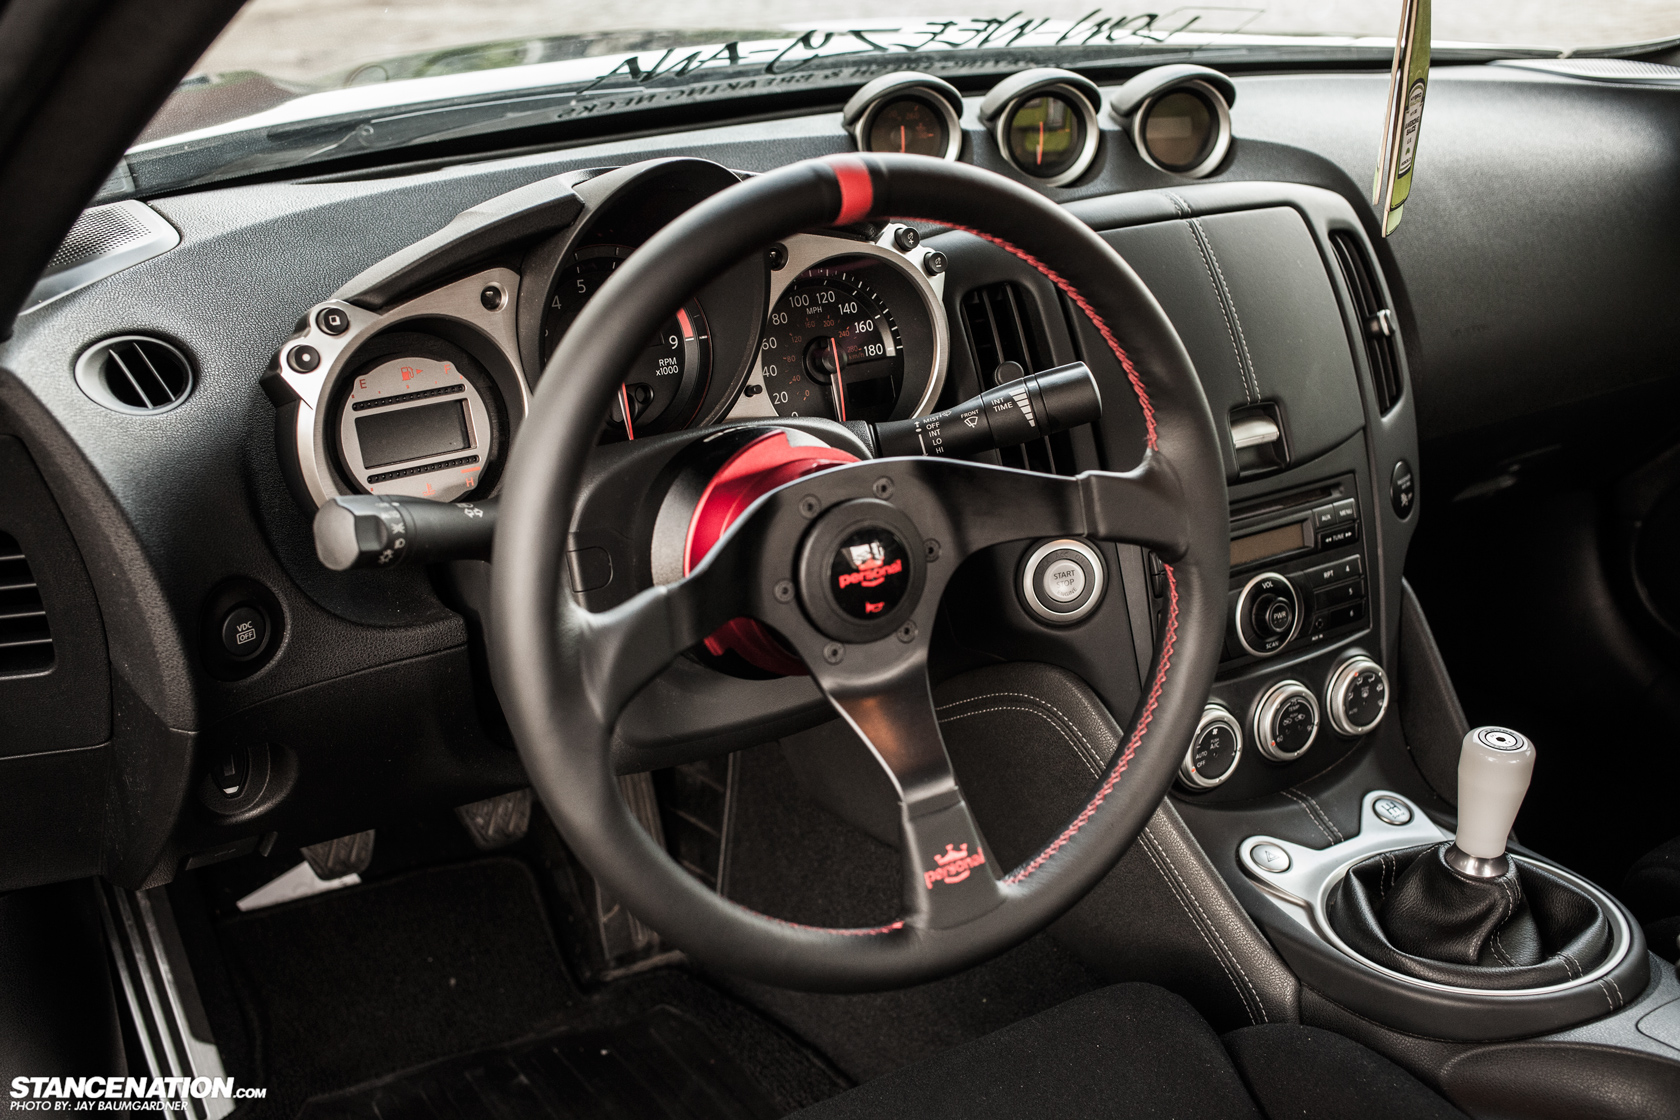 As With Any Great Build, Jimmyu0027s Z Has A Great Assortment Of Interior  Goodies That Add To The Experience And Feeling You Get From Sitting In The  Form Of ...